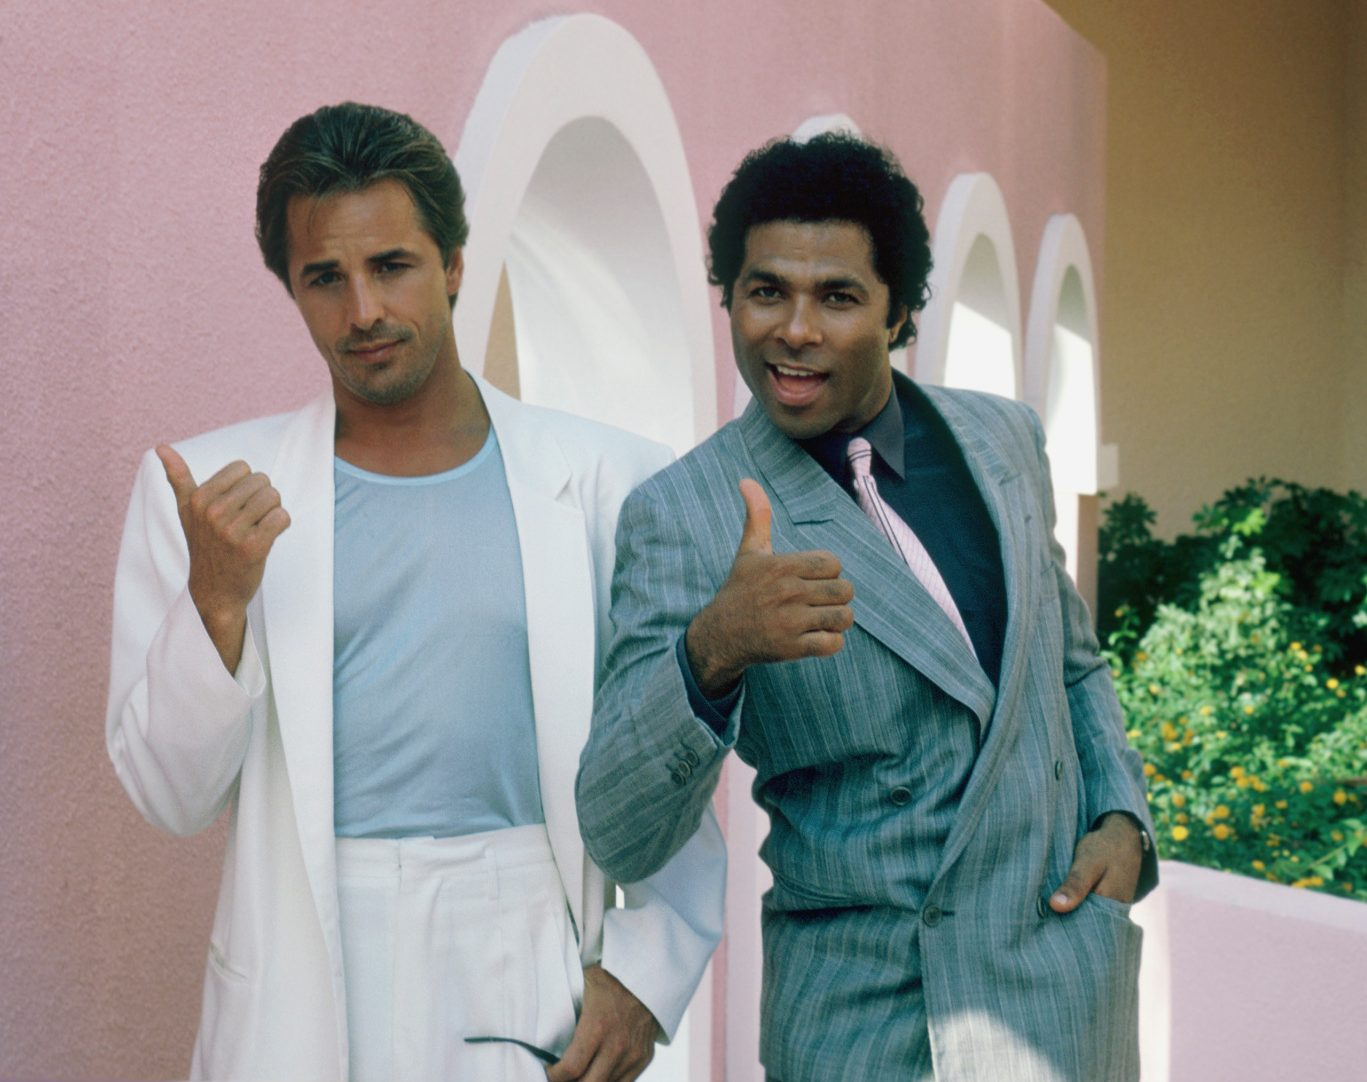 598241ac04027c40d50411b3 GettyImages 138429891 e1608300978496 20 Things You Probably Didn't Know About Miami Vice